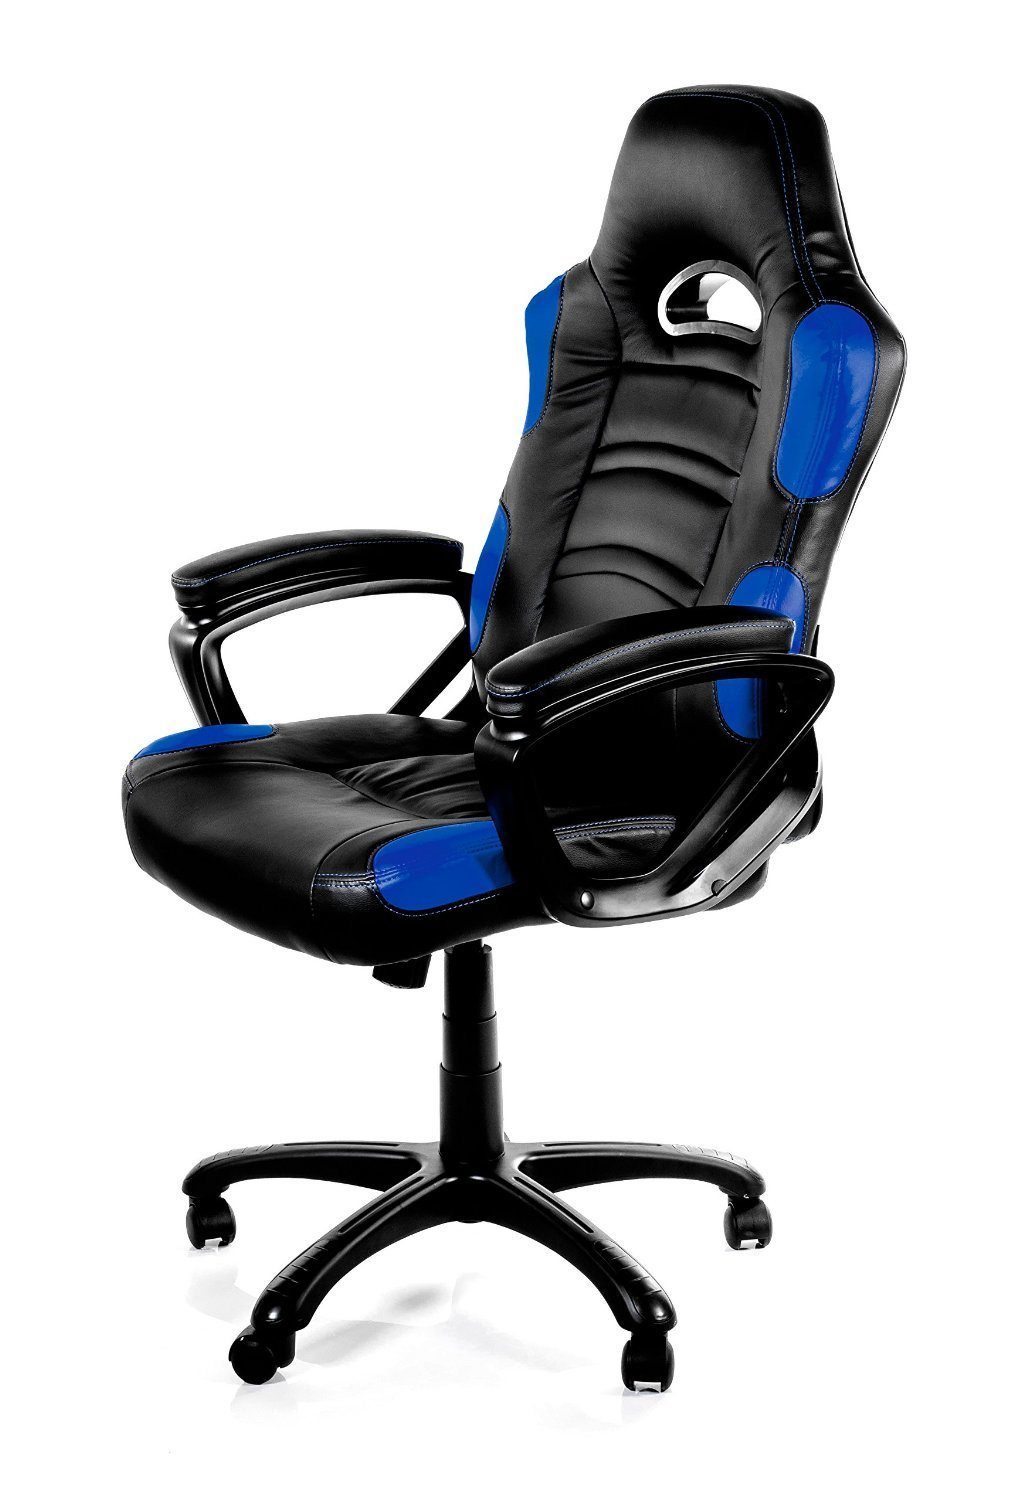 best chair for pc gaming 2016 camp with canopy so they need a good that contains angle their bones and head office chairs under 200